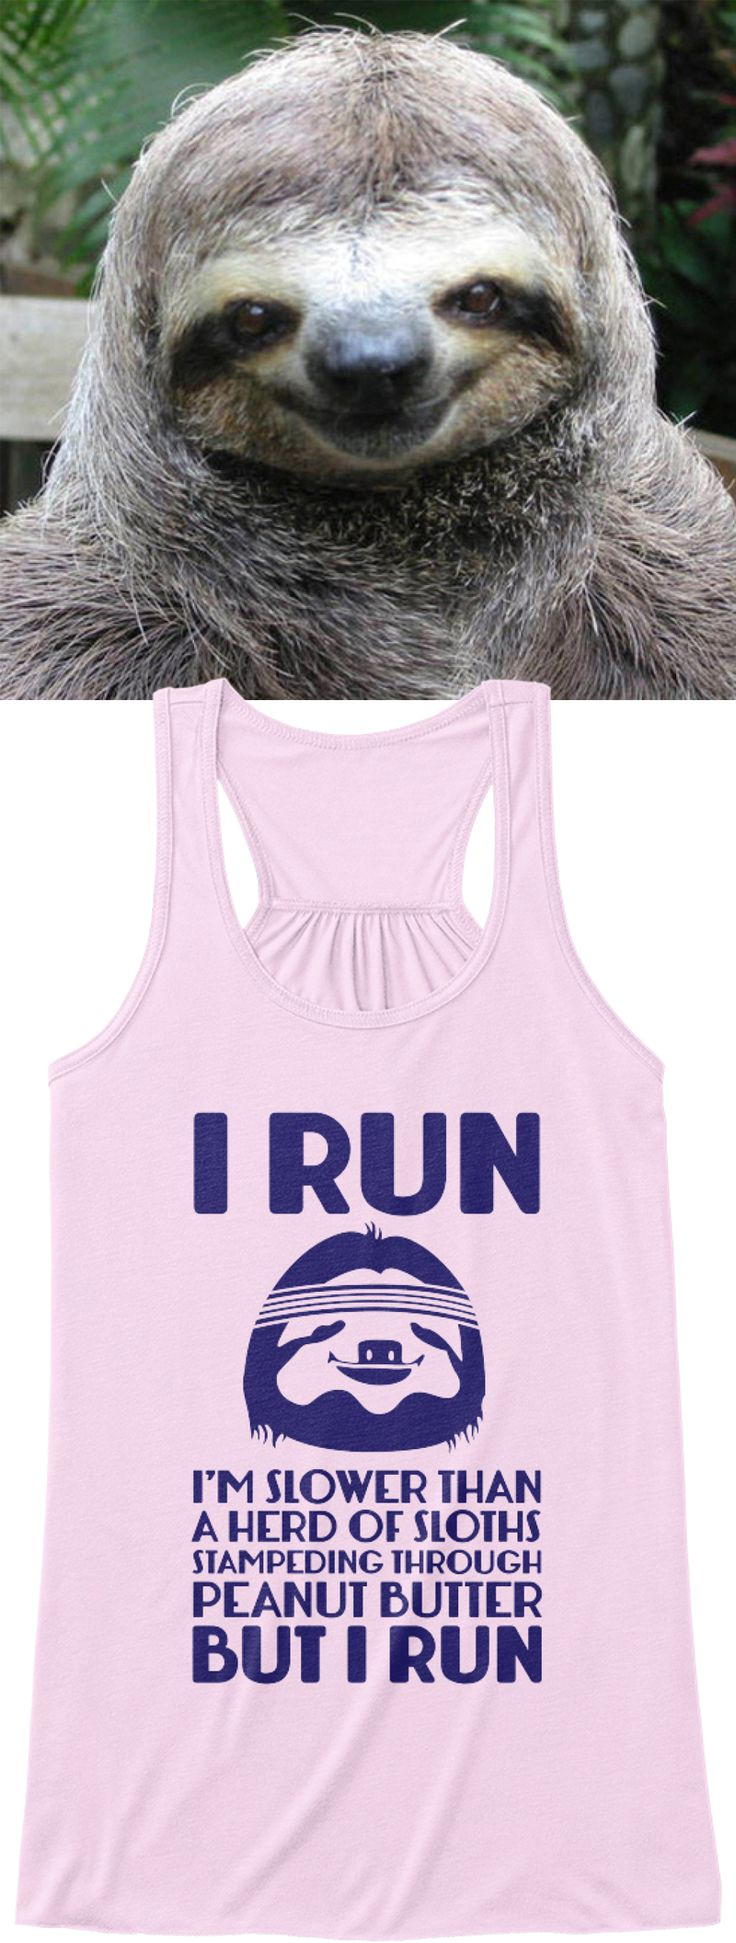 I'm slower than a heard of sloths stampeding through peanut butter but I run.  Available in multiple styles and colors.  Reserve yours by clicking on the image before they are gone.